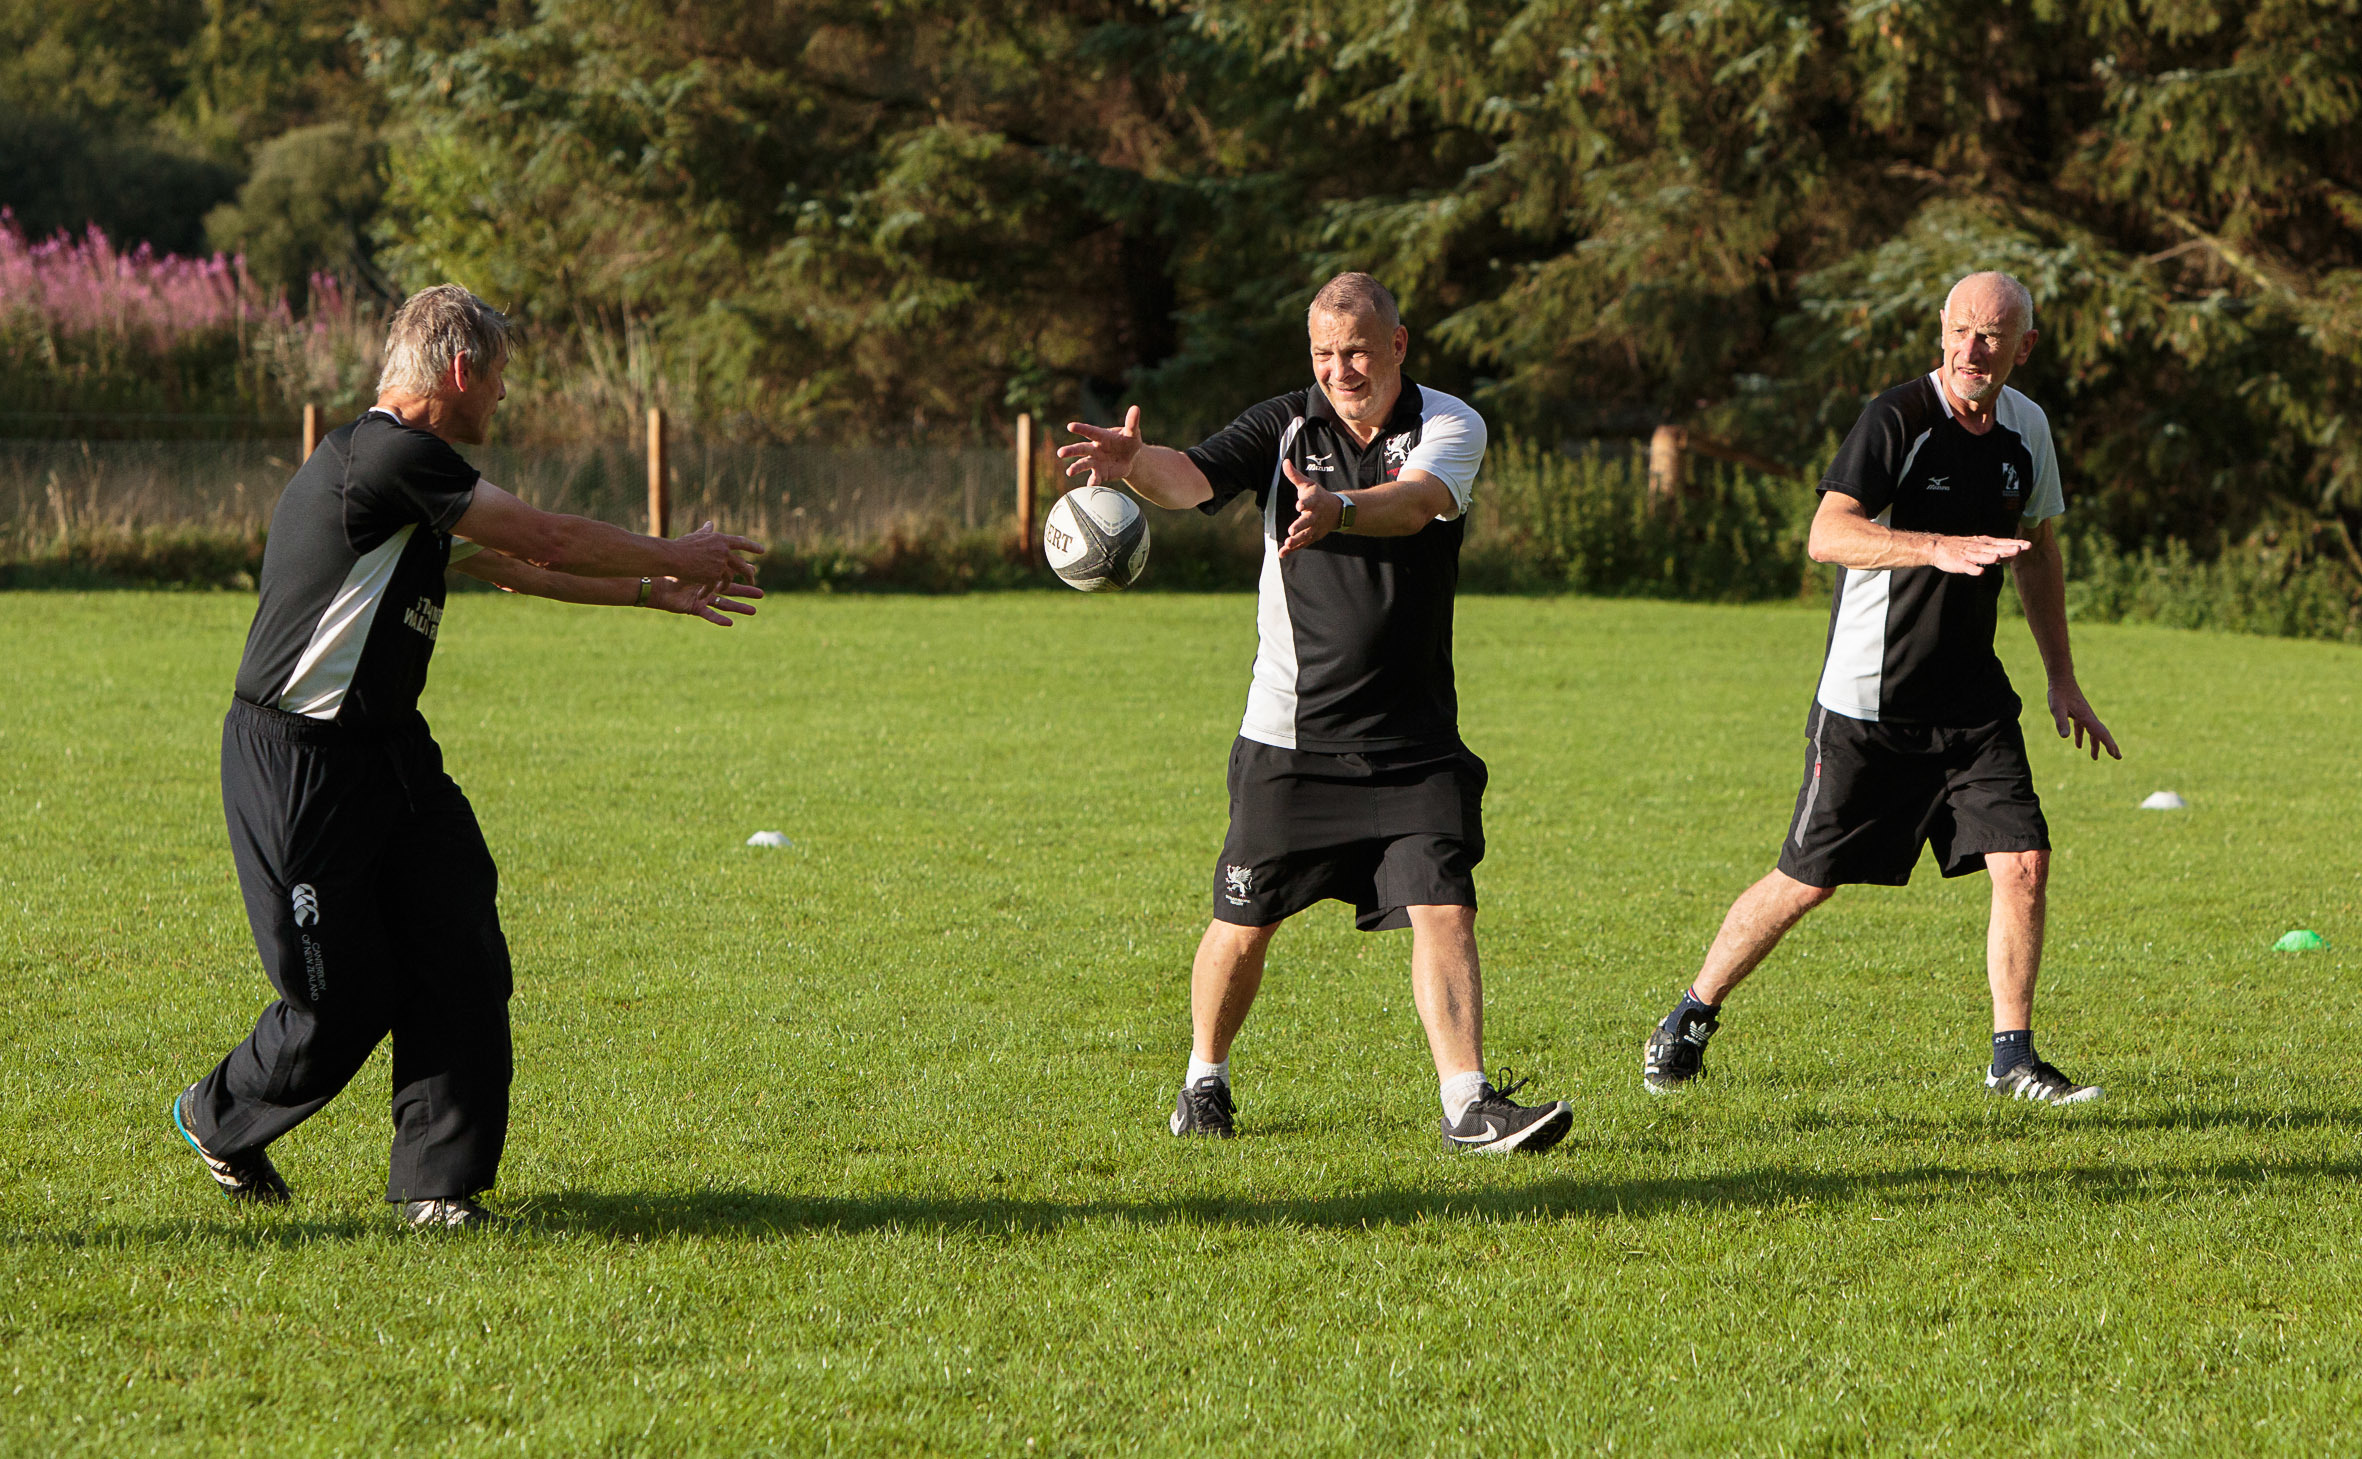 Simon Scott, 63, Bob Baldie, 51, and Willie Gray, 62, take part in a pilot walking rugby session at Strathmore